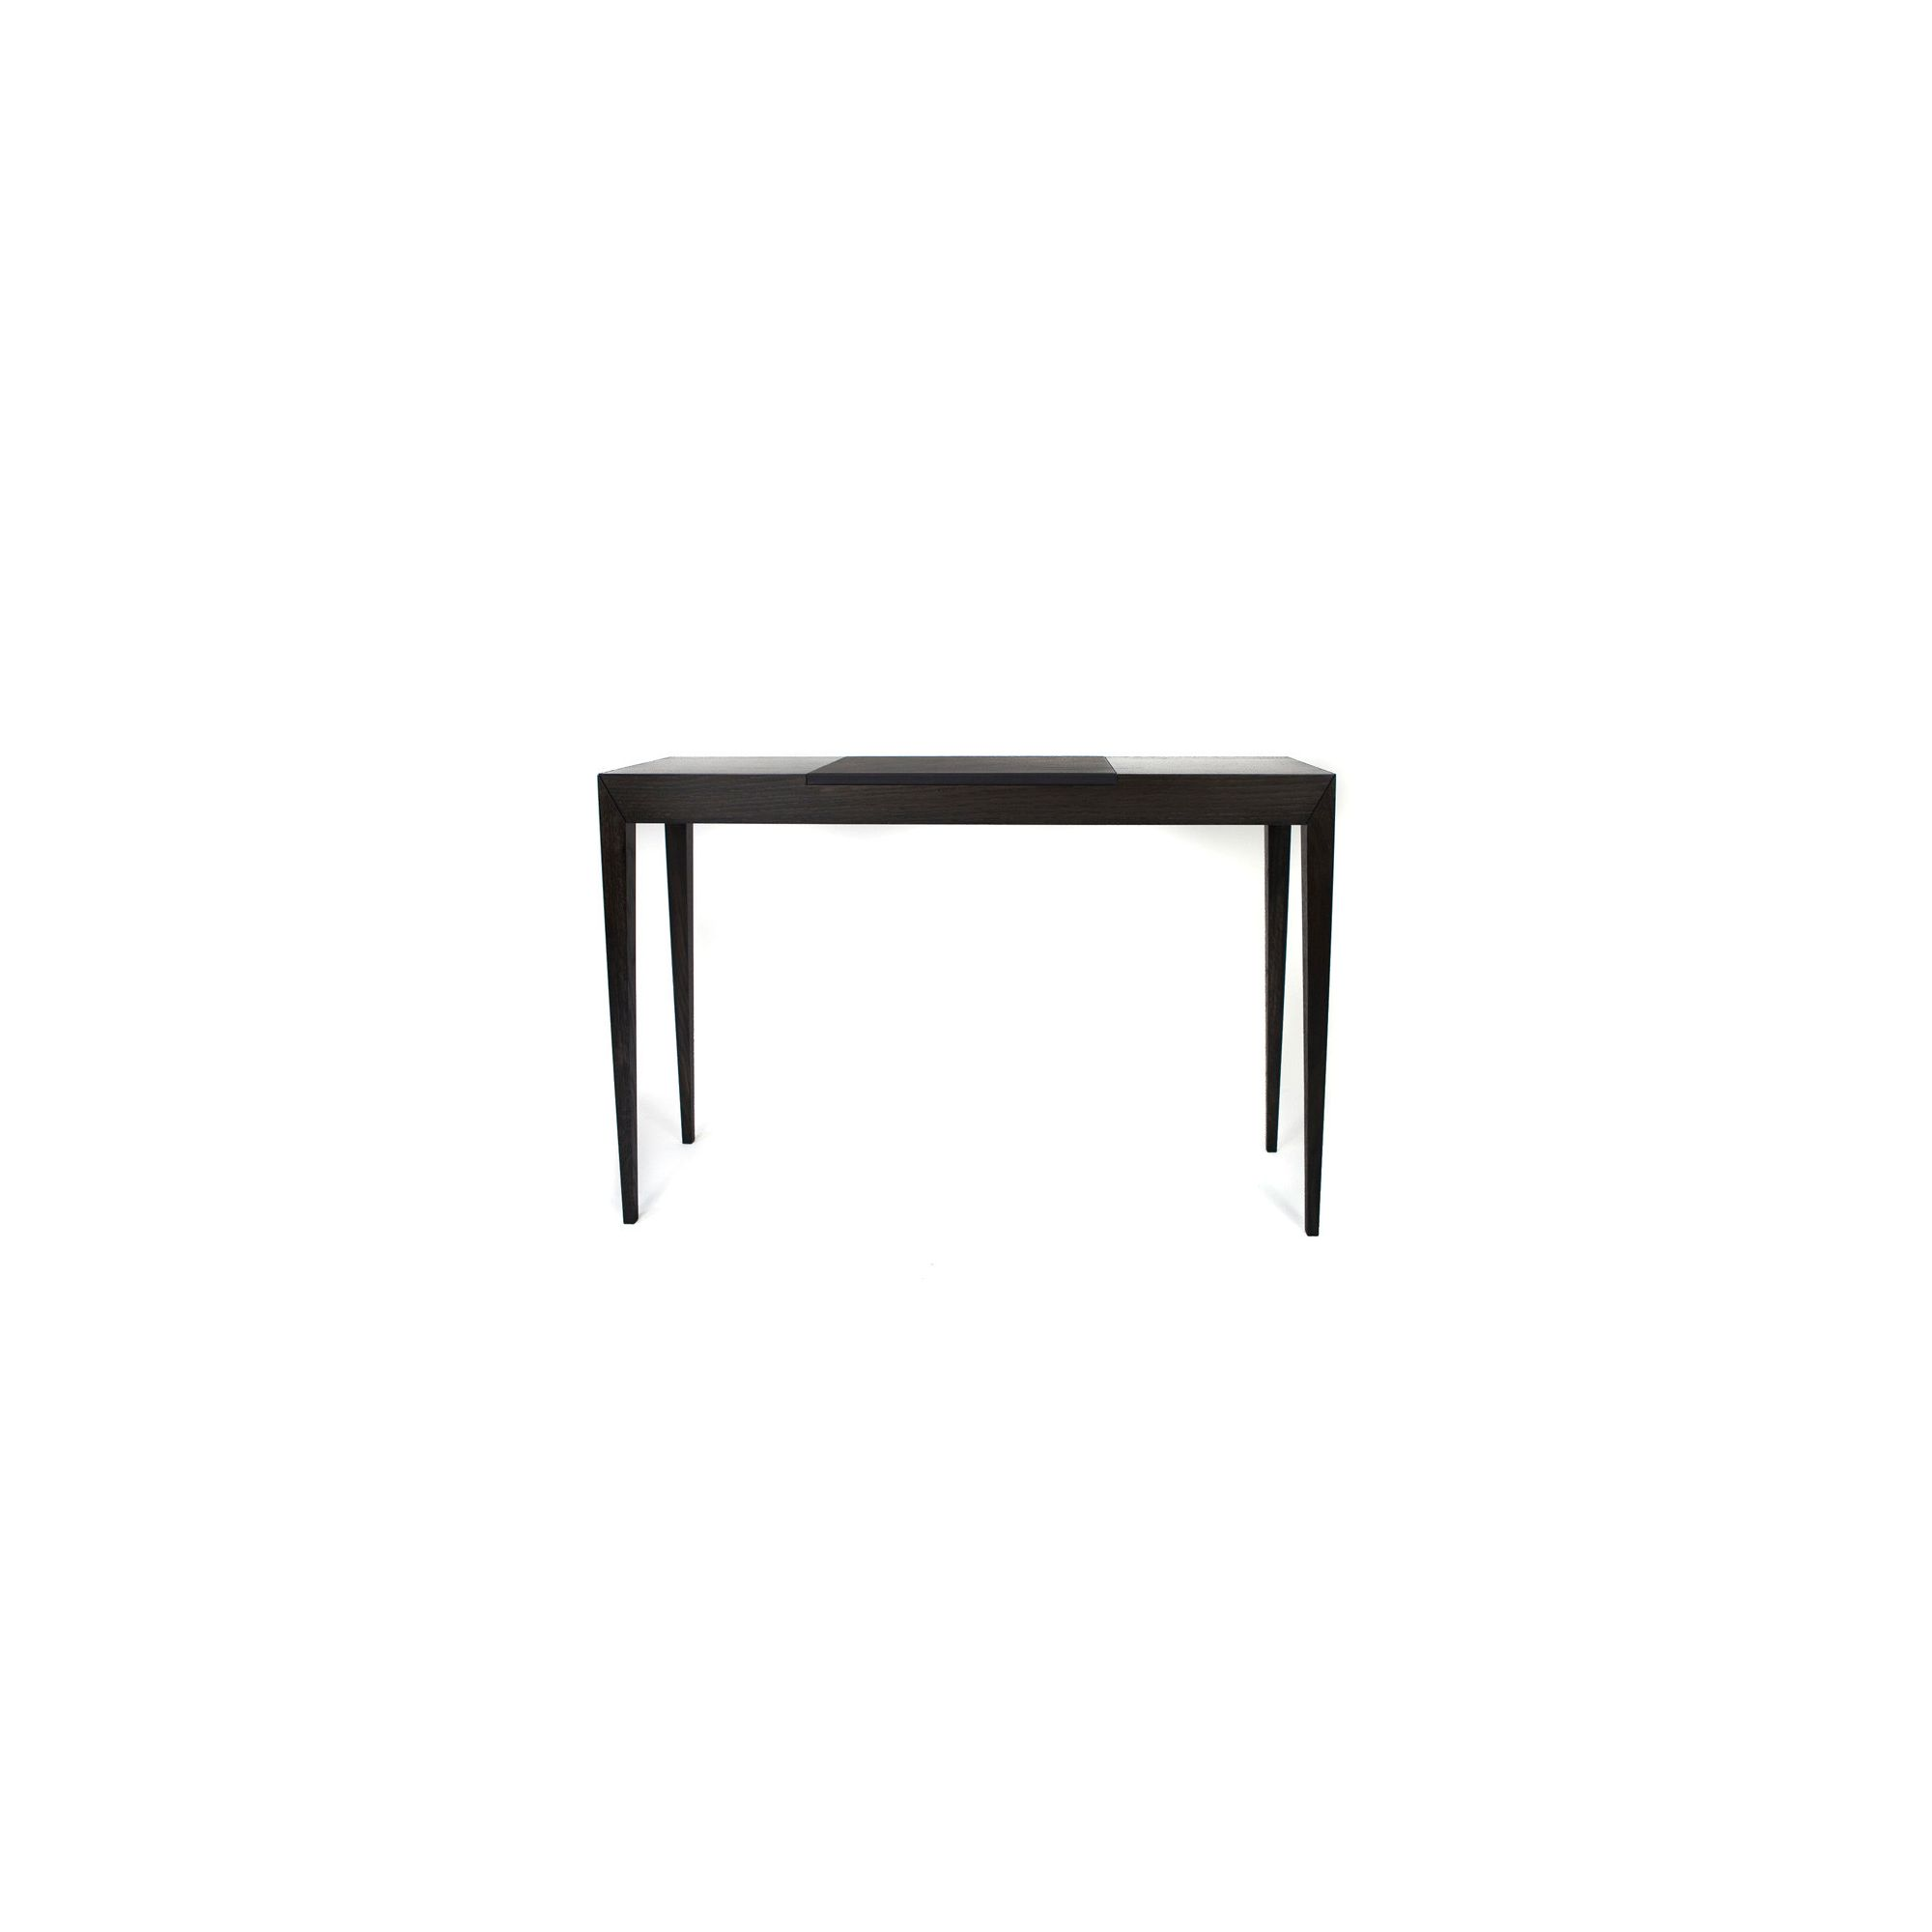 Novita Furniture Design Voltaire Console Table at Tesco Direct